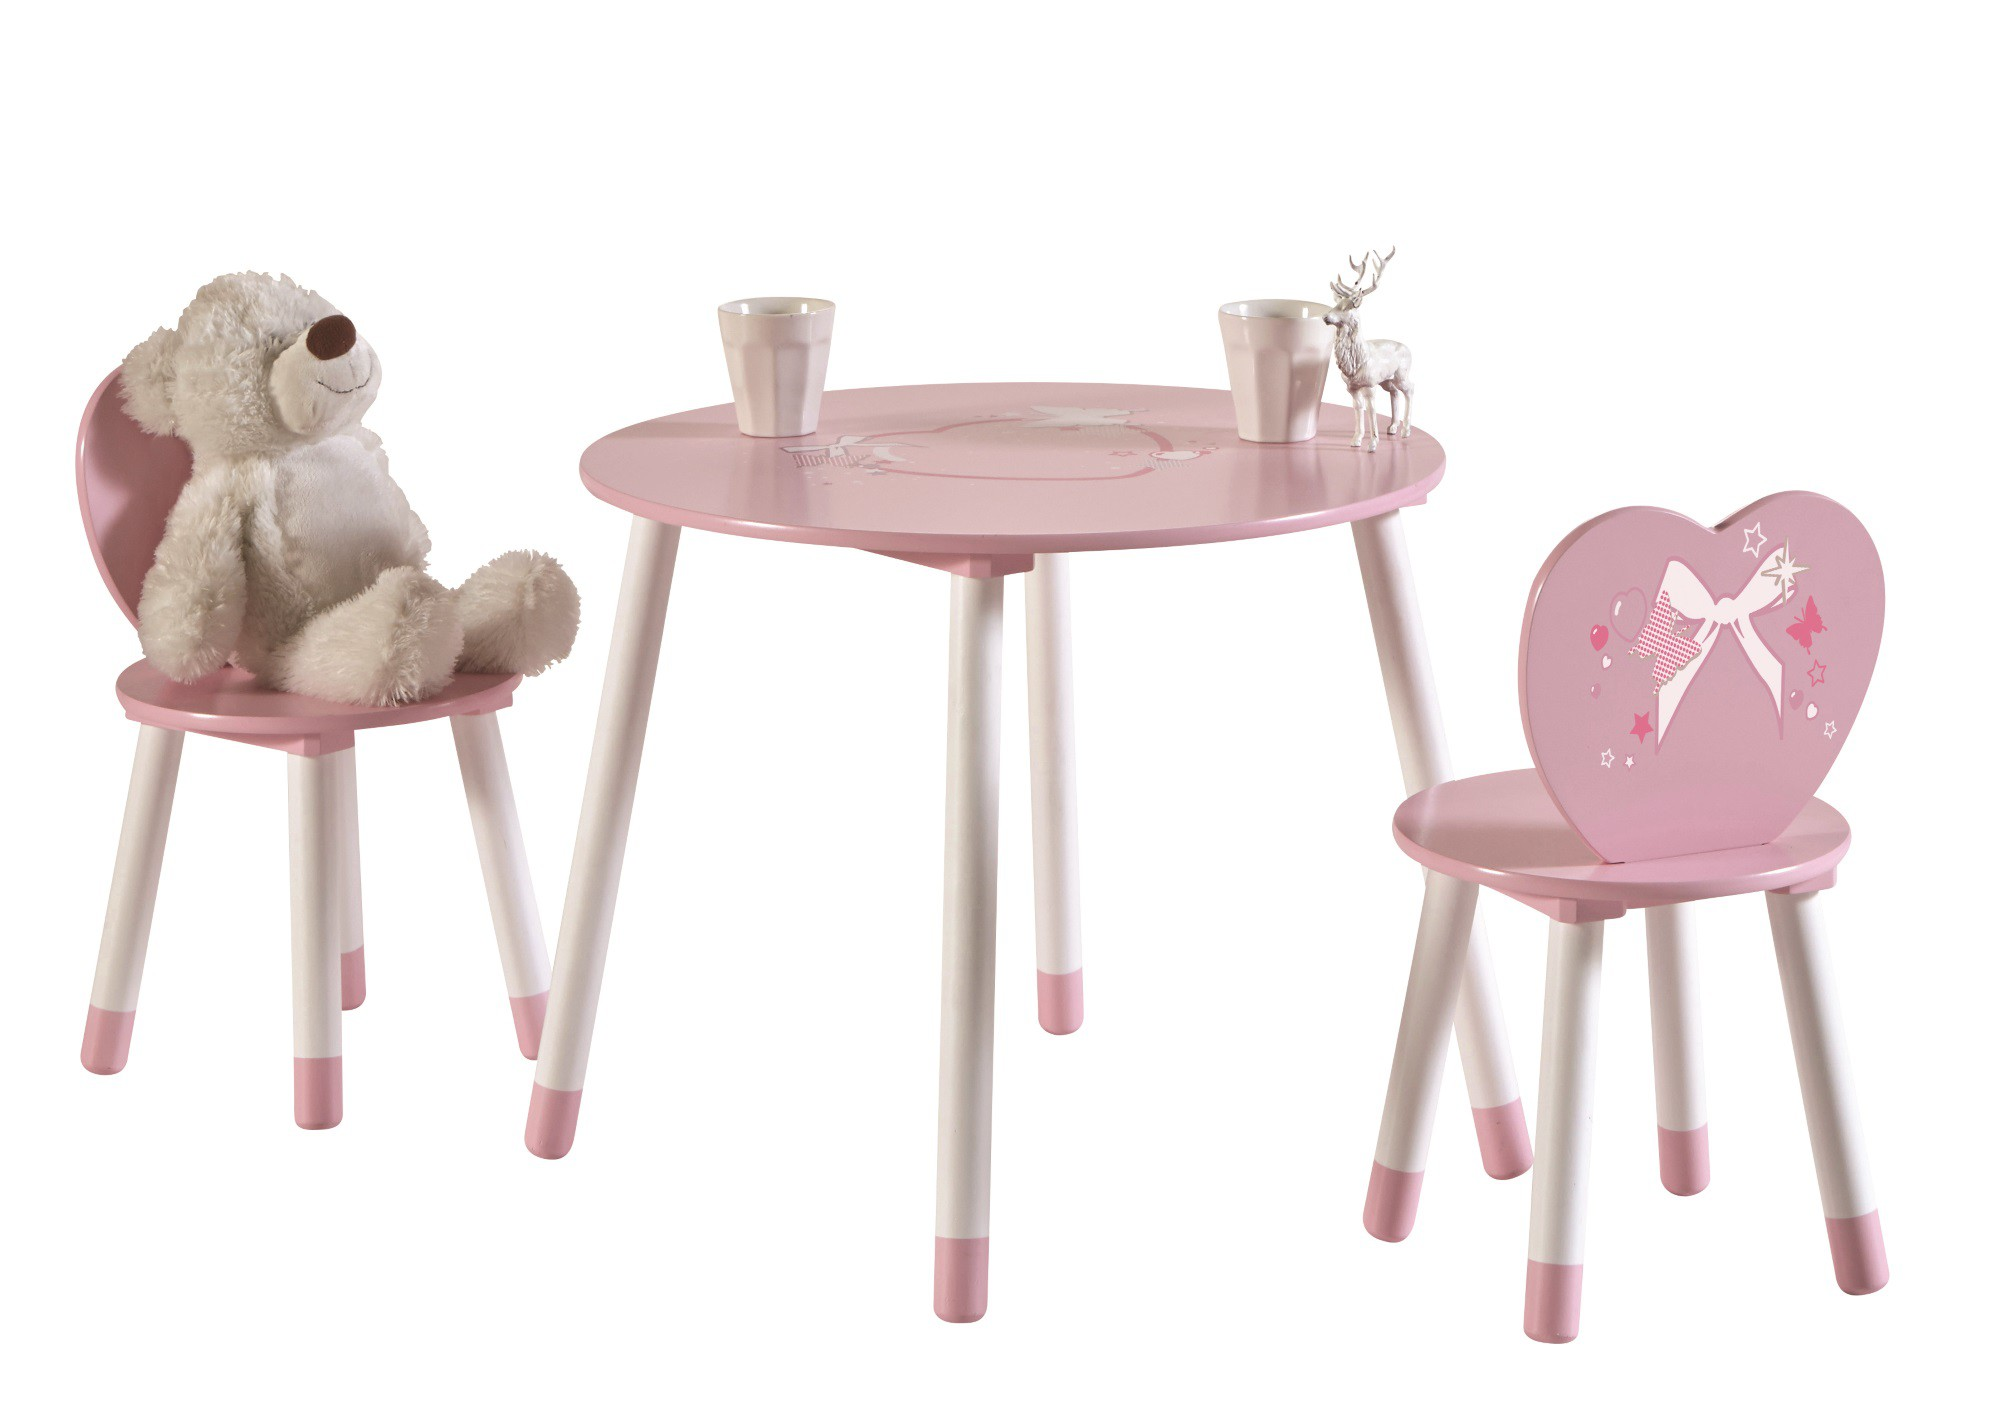 Table et chaise petite fille ouistitipop - Table chaise enfant ikea ...